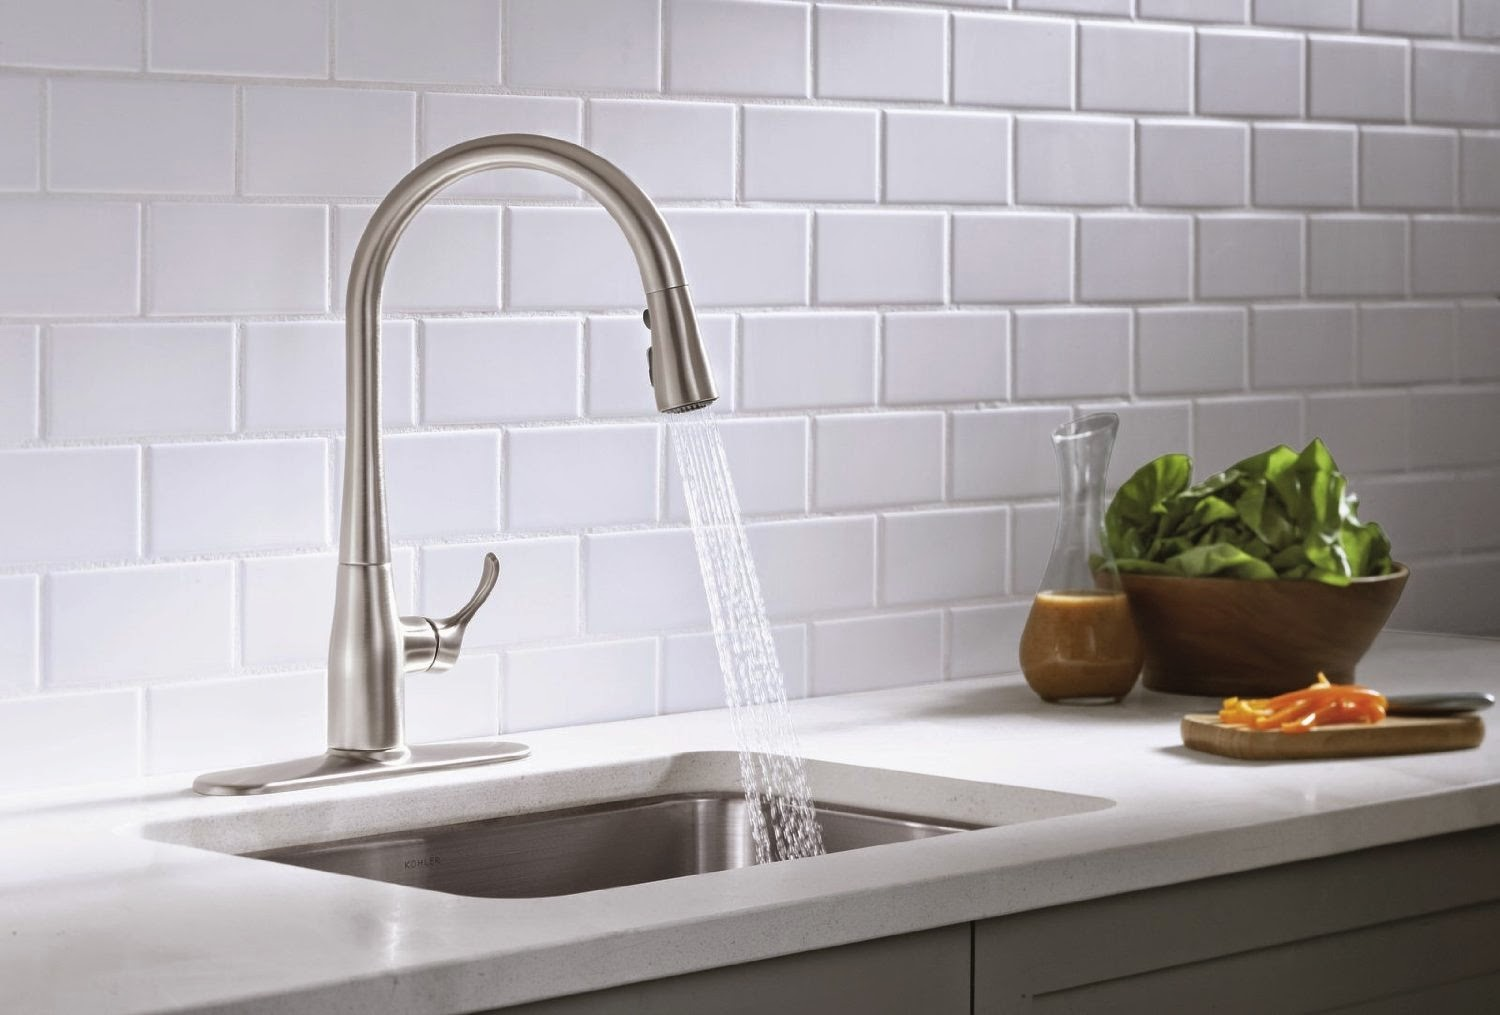 Kohler Kitchen Faucets Simplice kohler k-596-cp simplice single-hole pull-down kitchen faucet